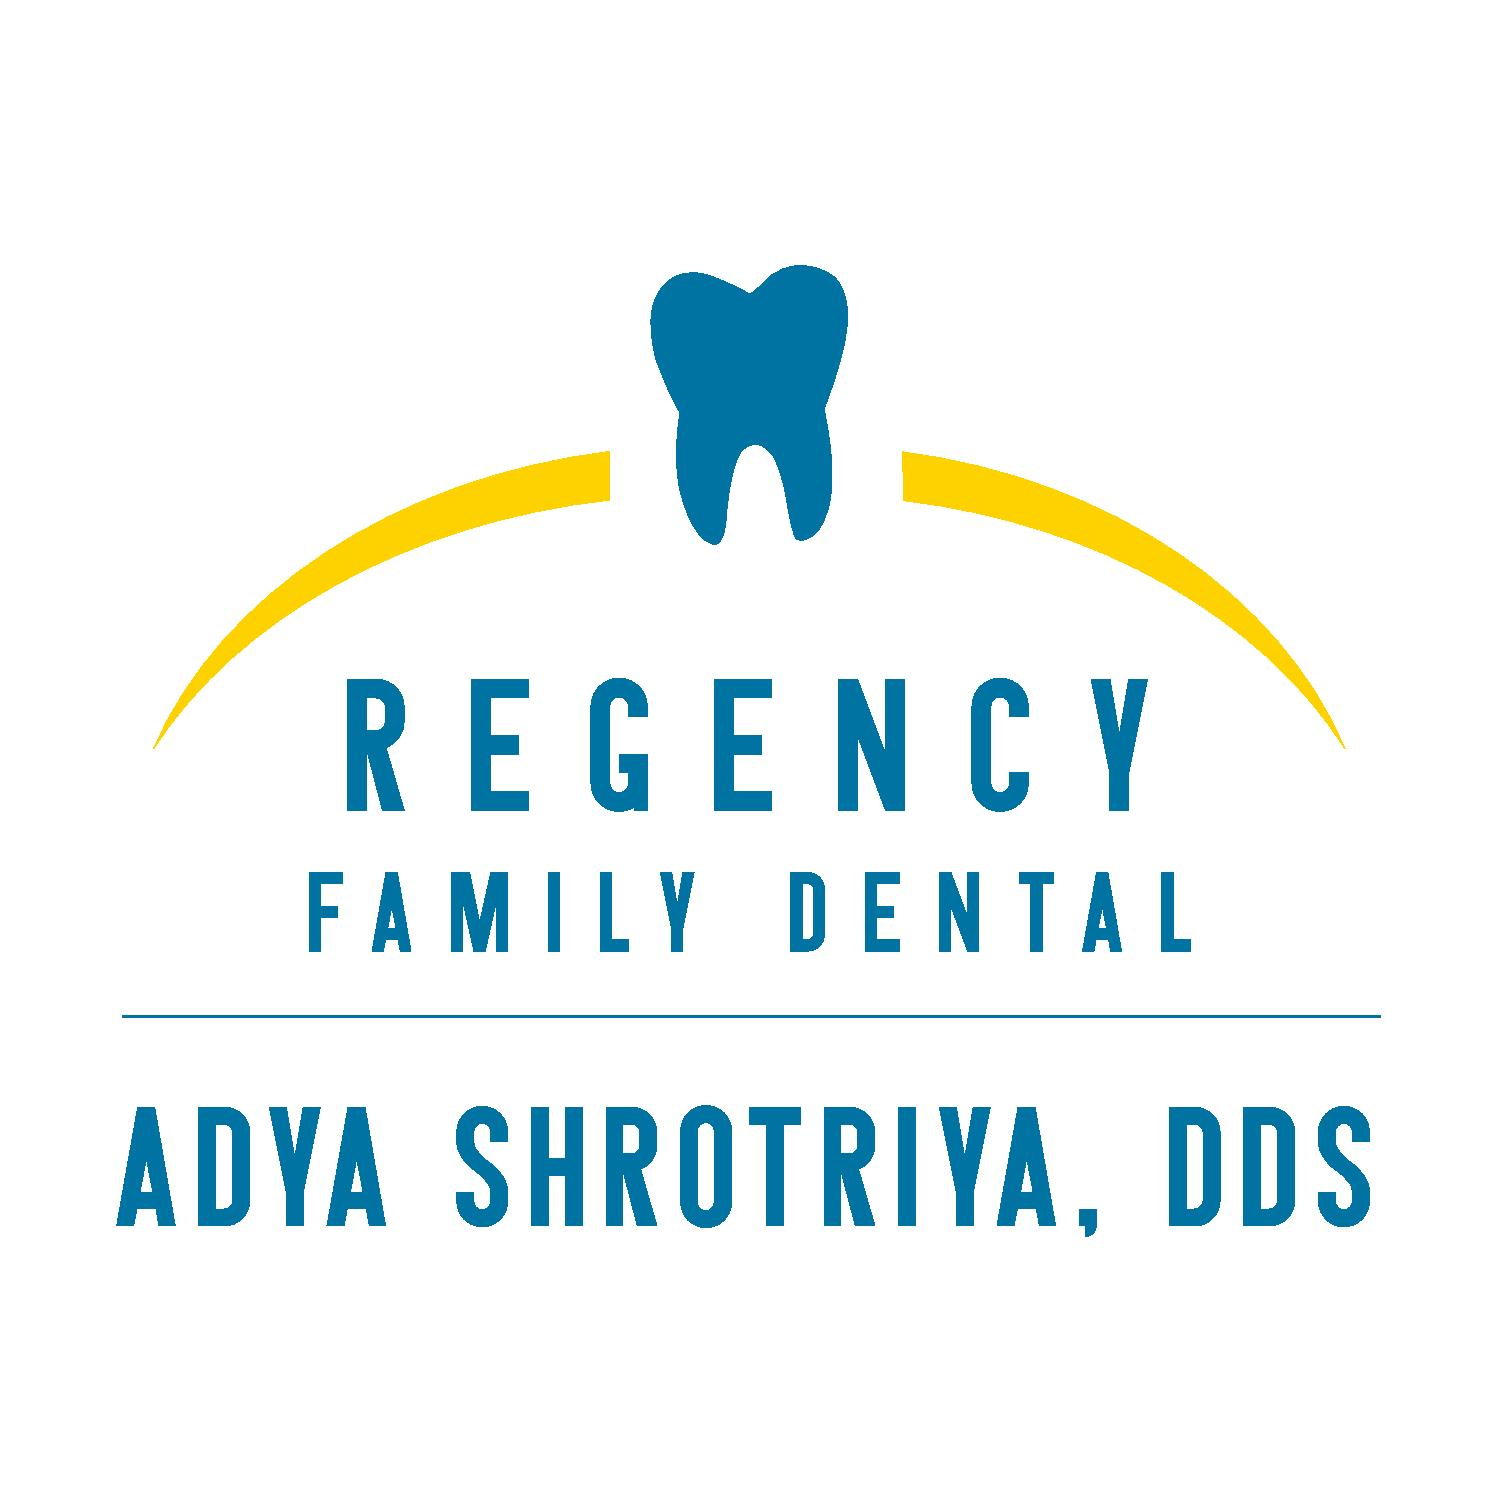 Regency Family Dental.jpg